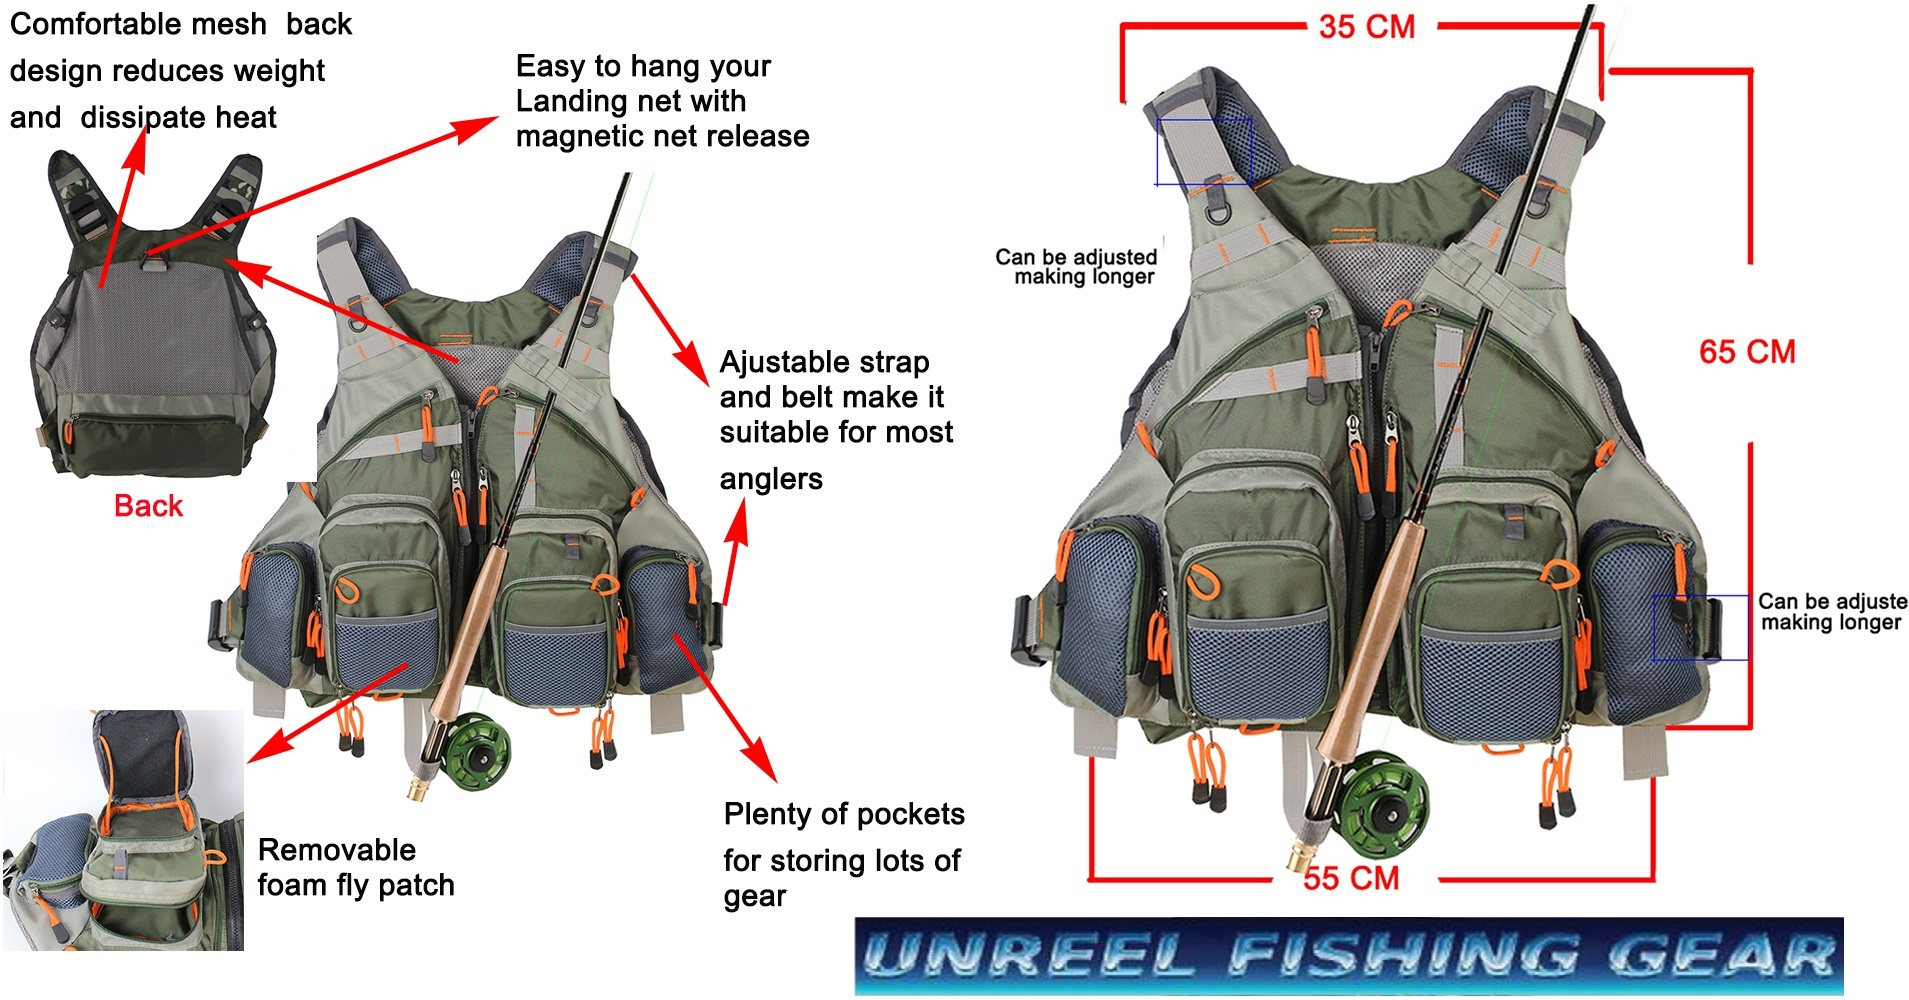 Fly fishing vest pack free flybox unreel fishing gear for How to get free fishing gear